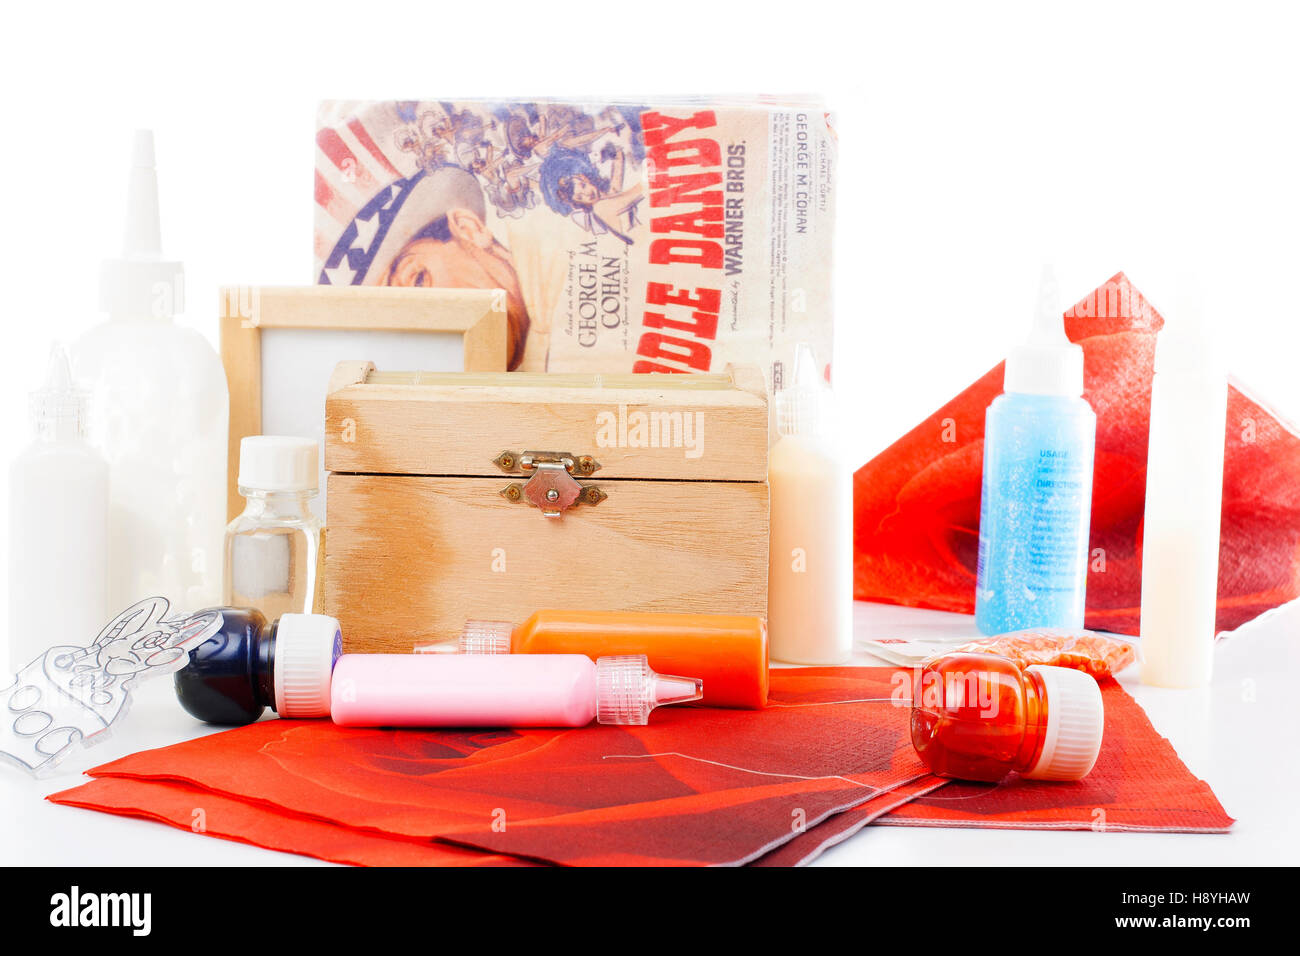 Glass Glass Paint Glue Decoupage Glue Lacquer Decoupage Stock Photo Alamy